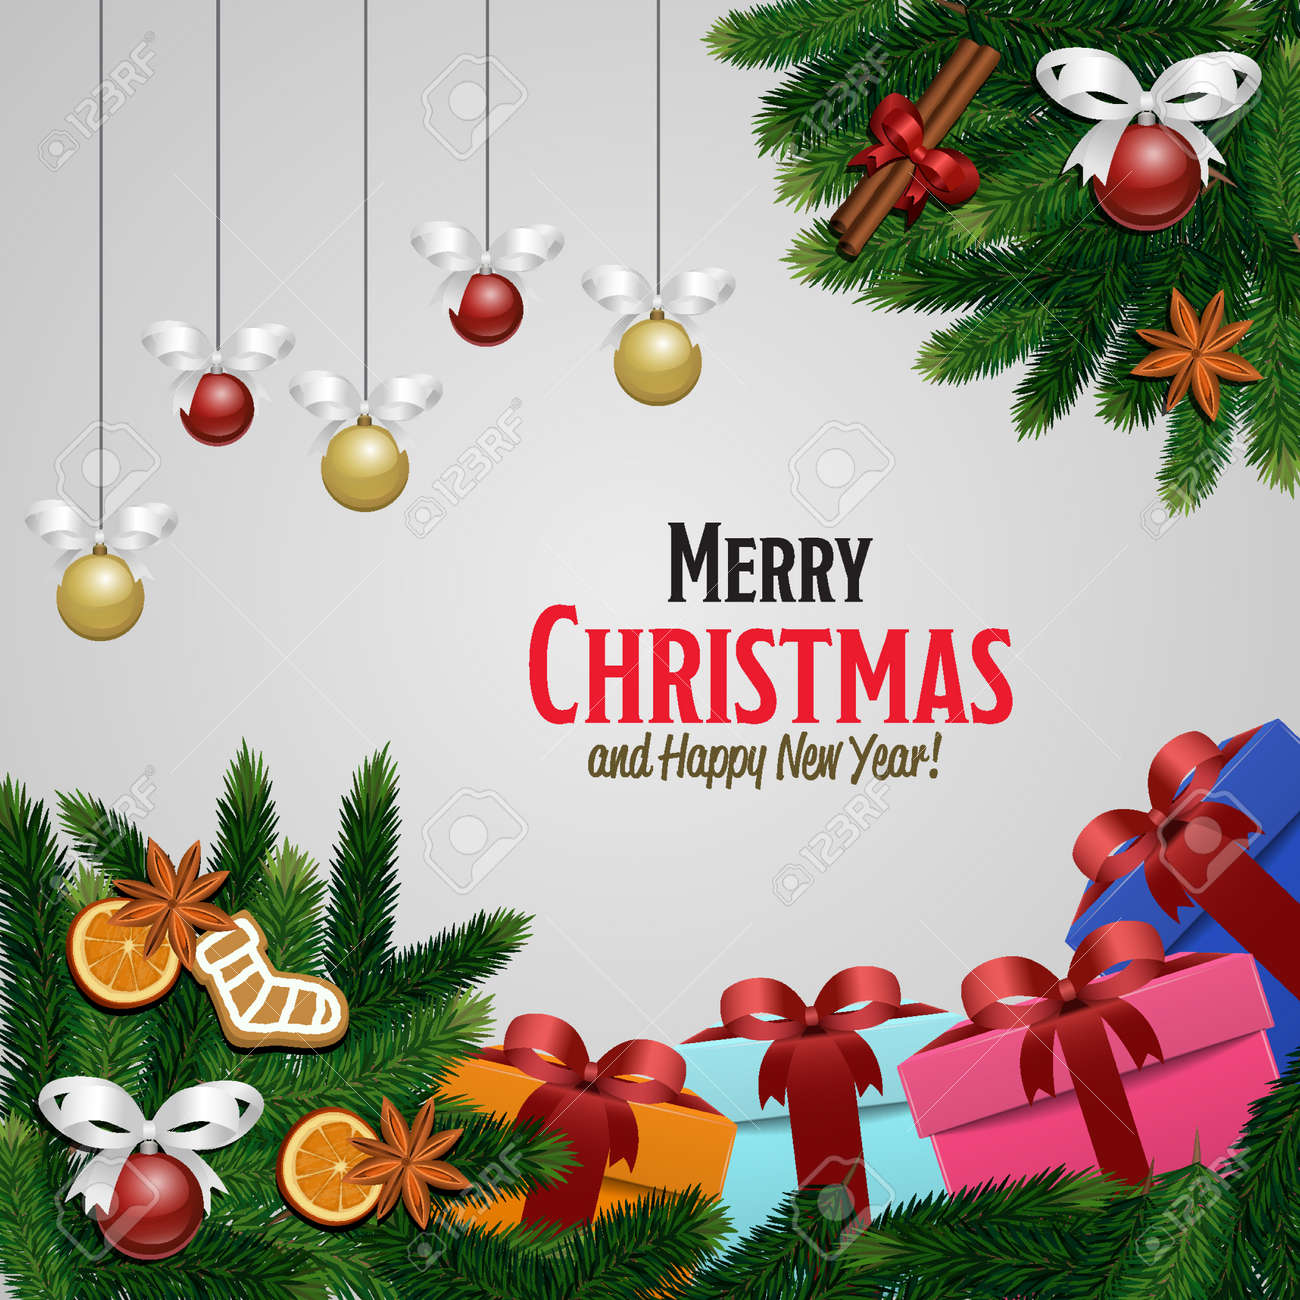 Merry Christmas And Happy New Year Greetings Vector Illustration ...